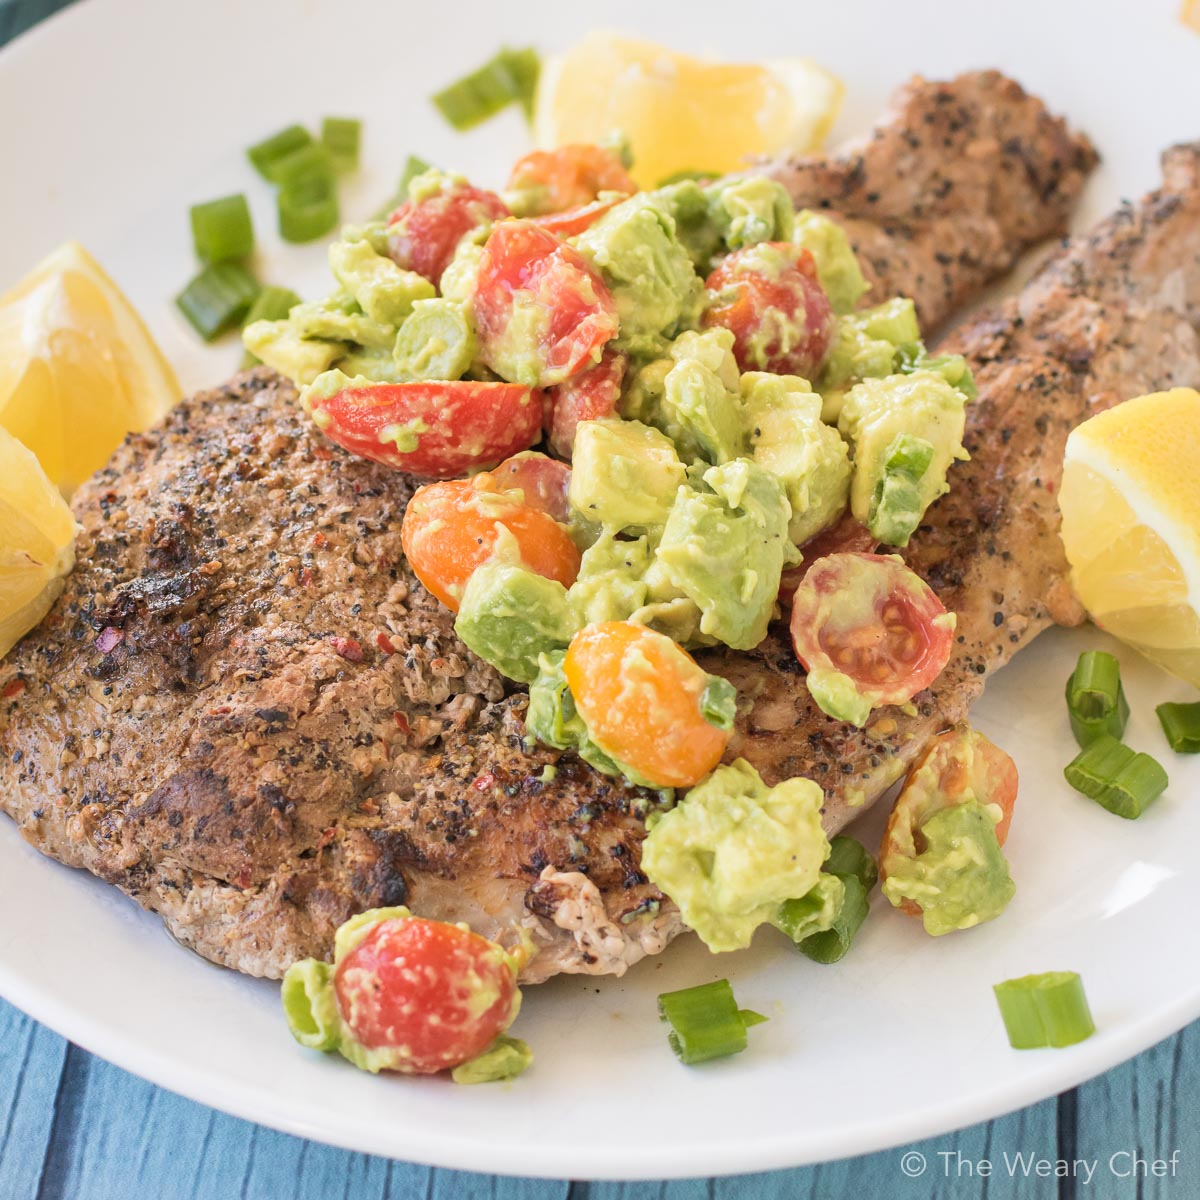 This butterflied pork tenderloin is grilled to perfection and then topped with a quick and easy lemon avocado salsa. This dinner is ready in under 30 minutes and is full of flavor!